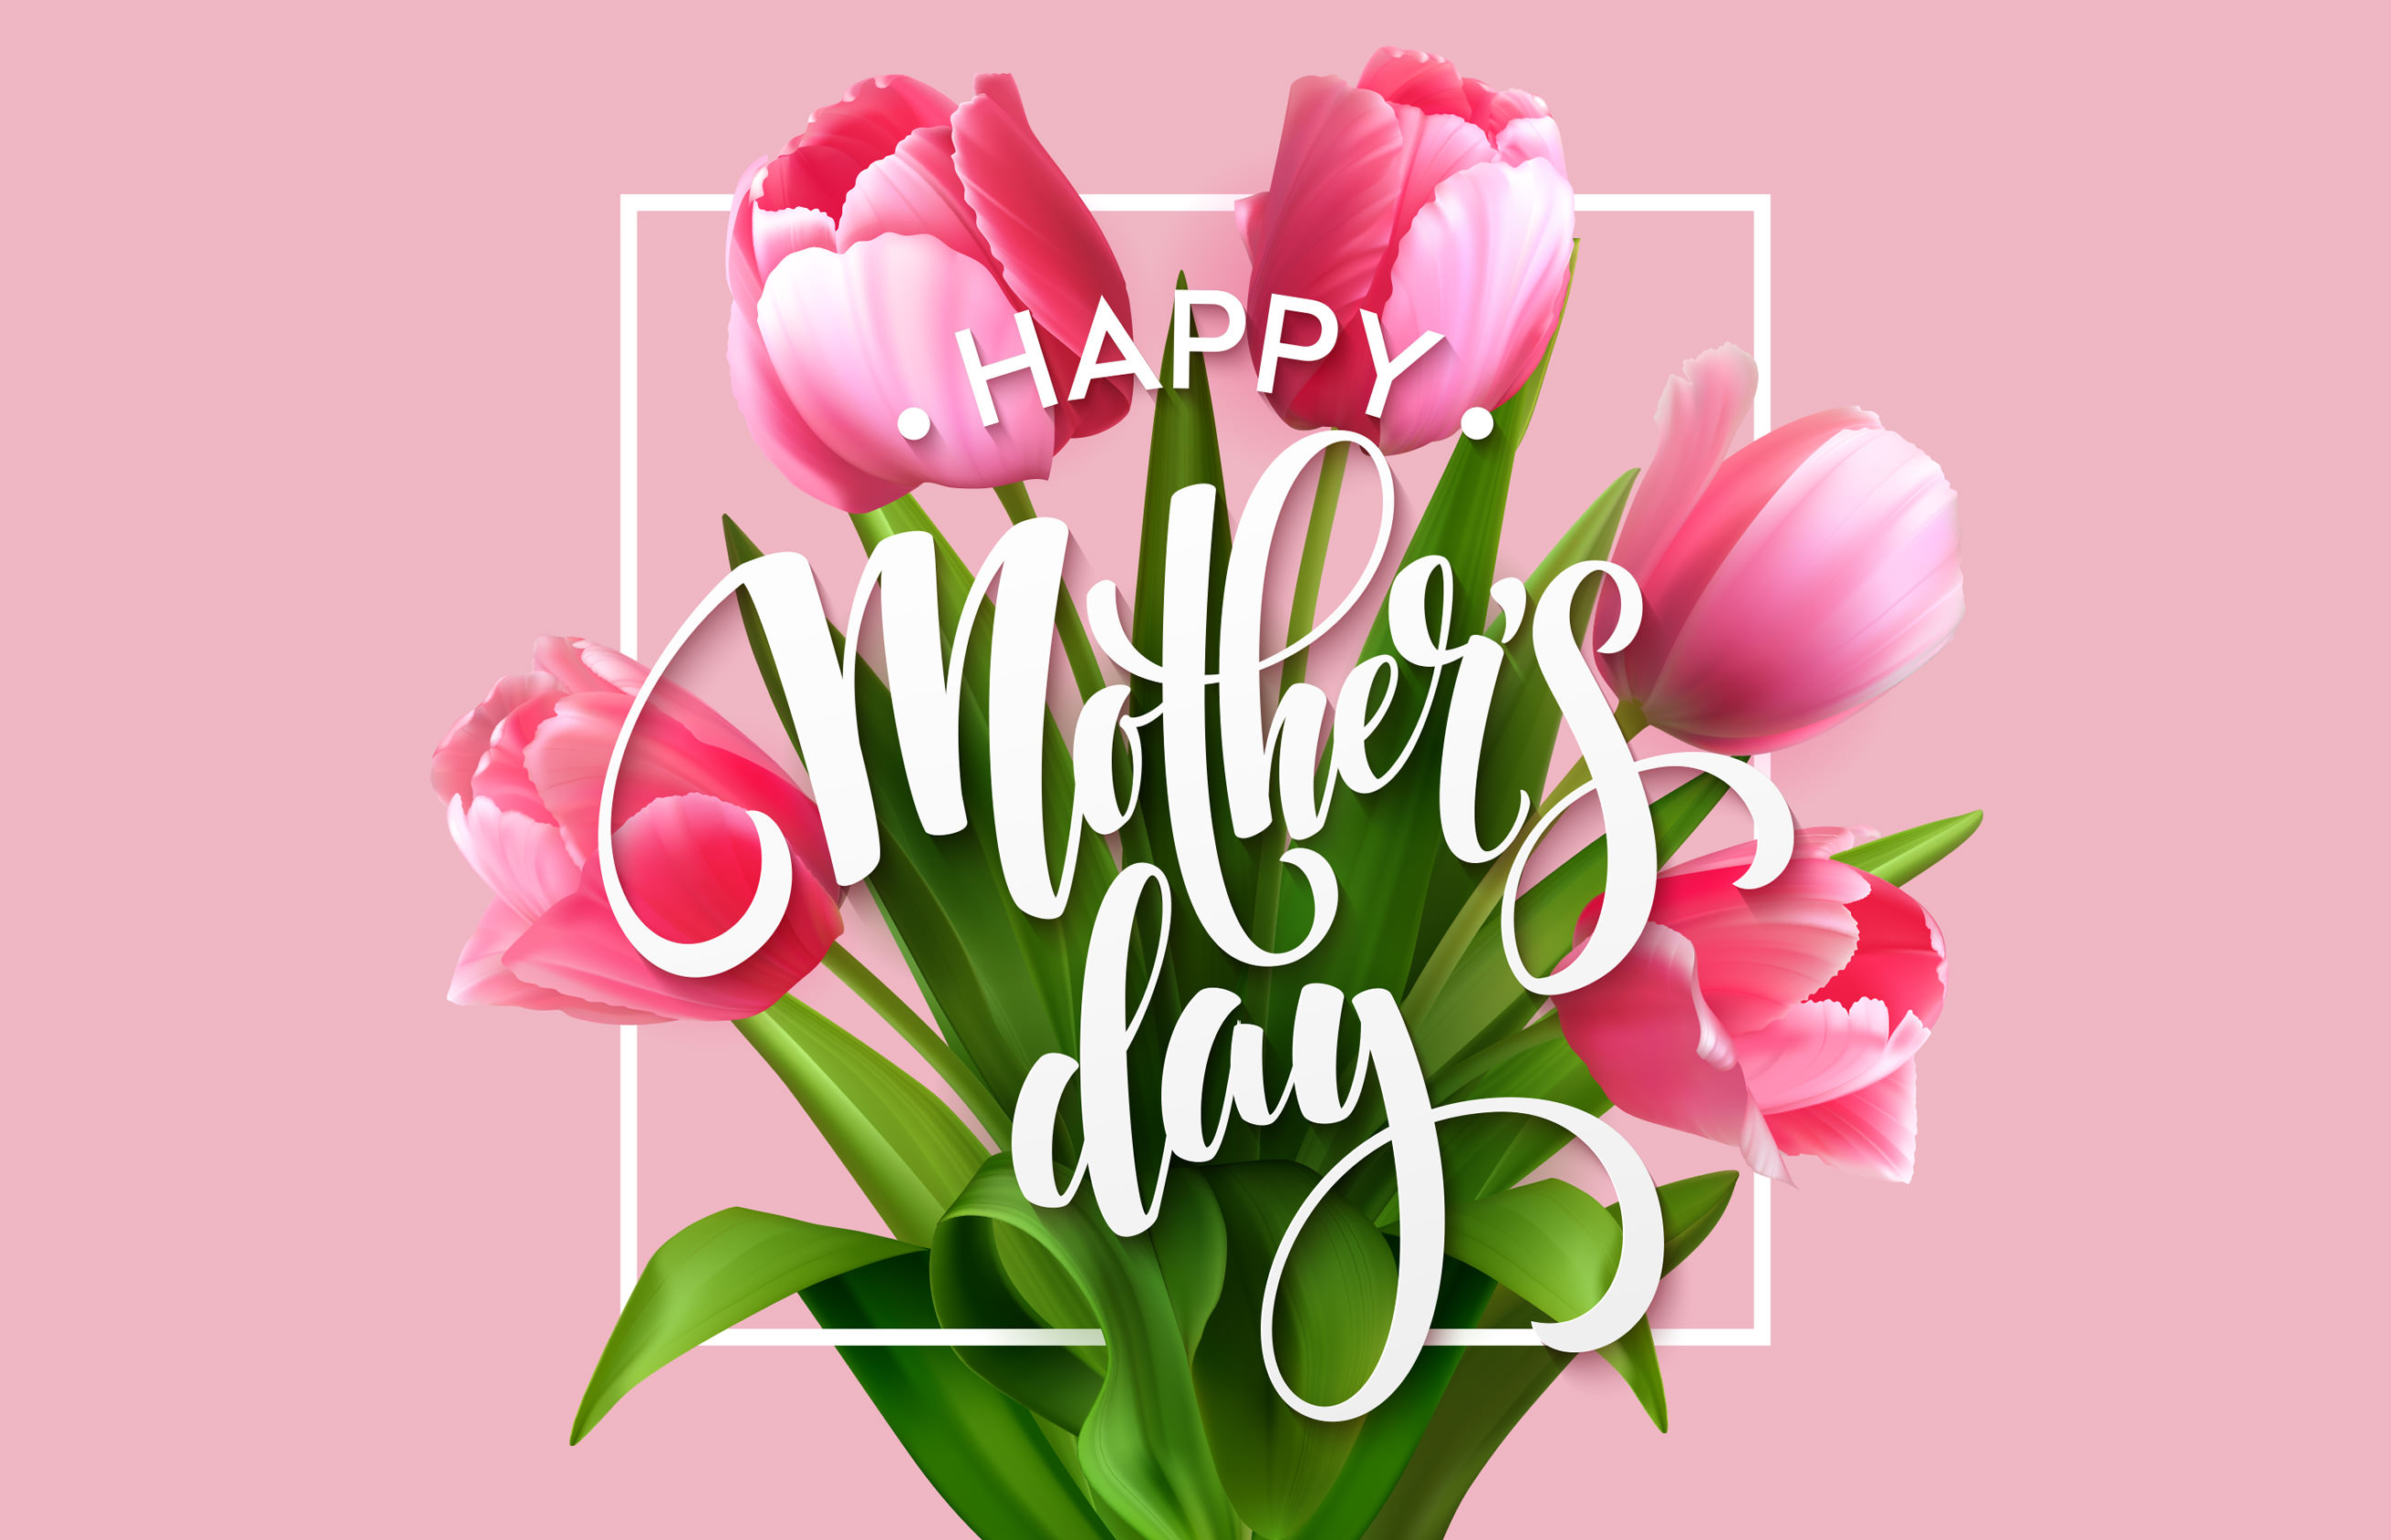 Happy Mothers Day >> 60 Inspirational Dear Mom And Happy Mother S Day Quotes